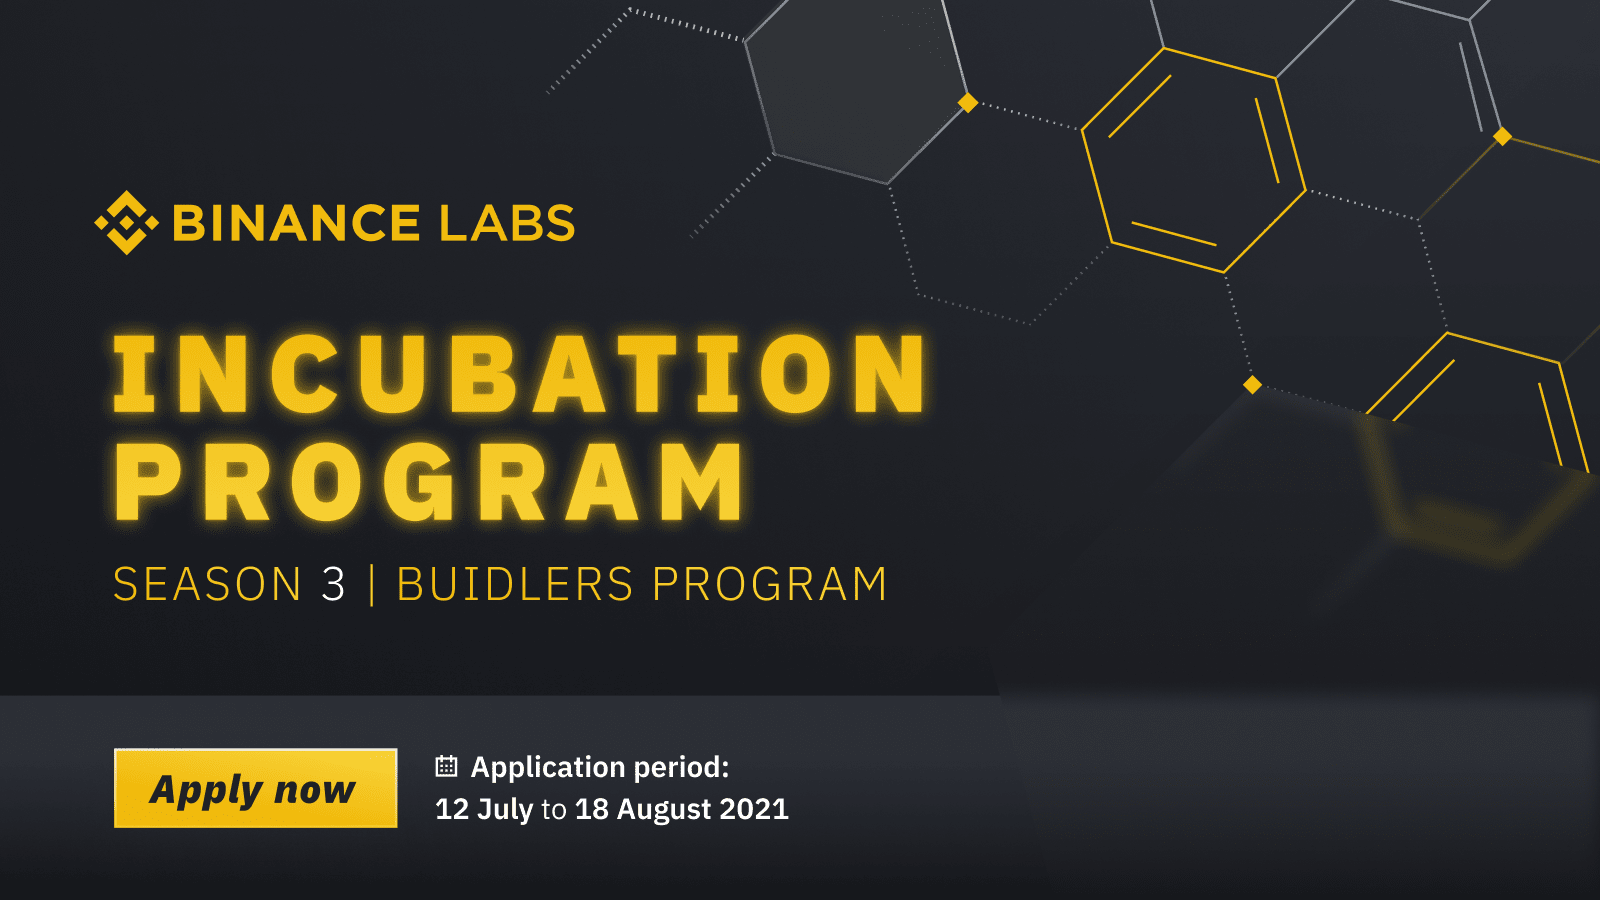 Apply Now for Season 3 of the Binance Incubation ProgramCryptocurrency Trading Signals, Strategies & Templates   DexStrats